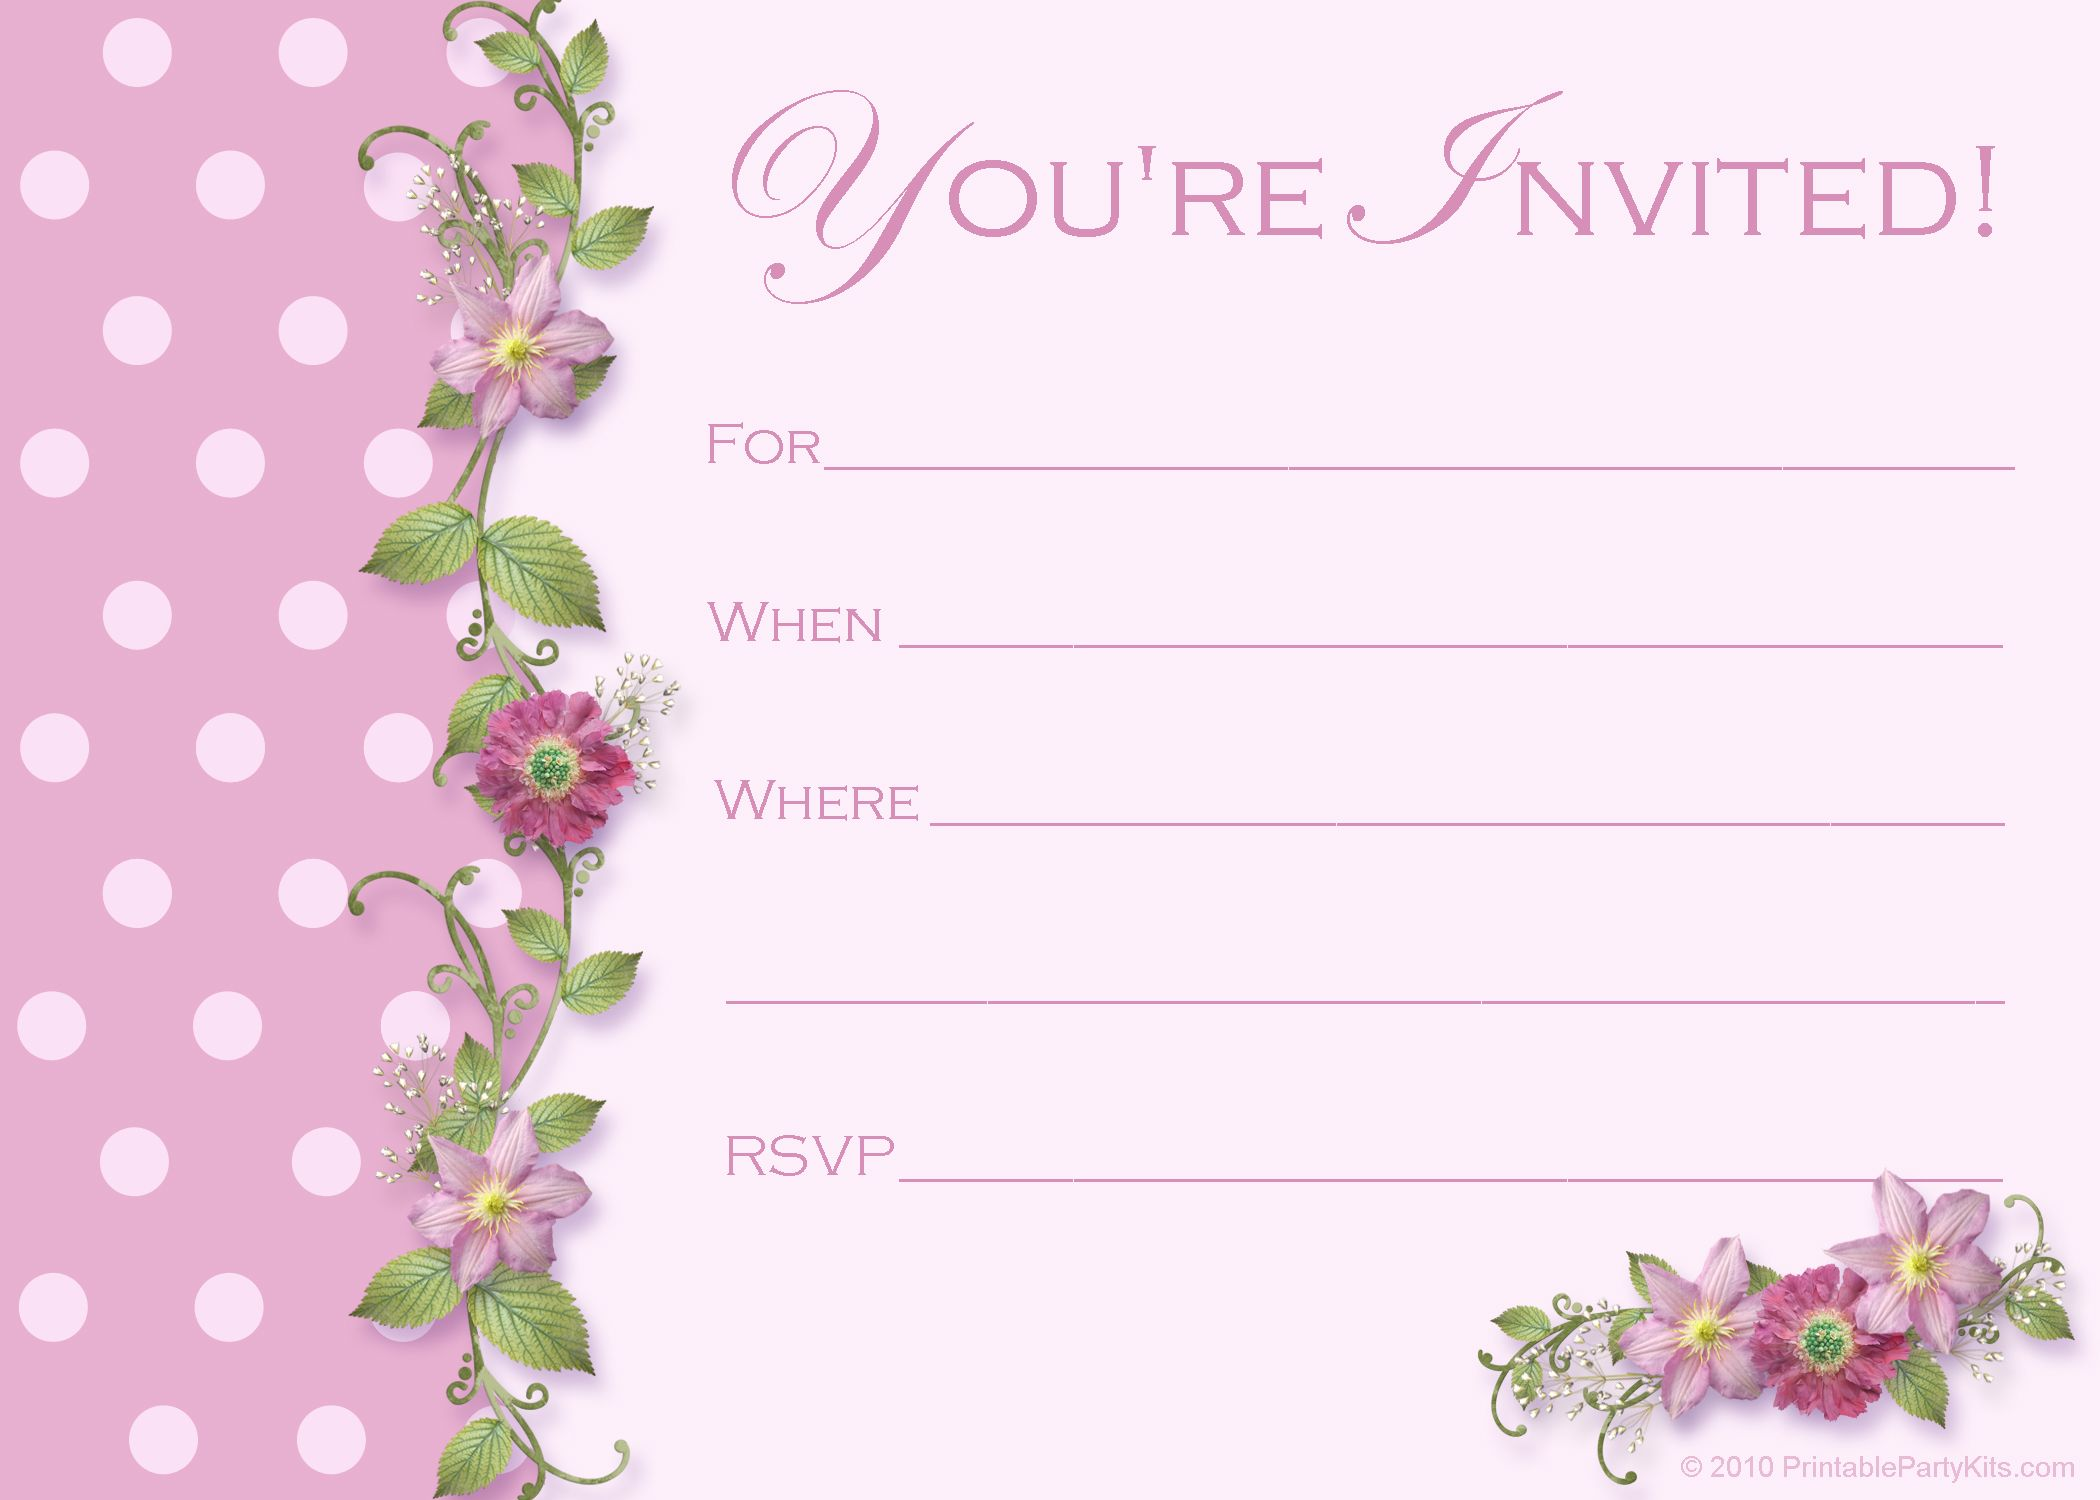 birthday invites for a girl | Invitations | Pinterest | Birthday ...